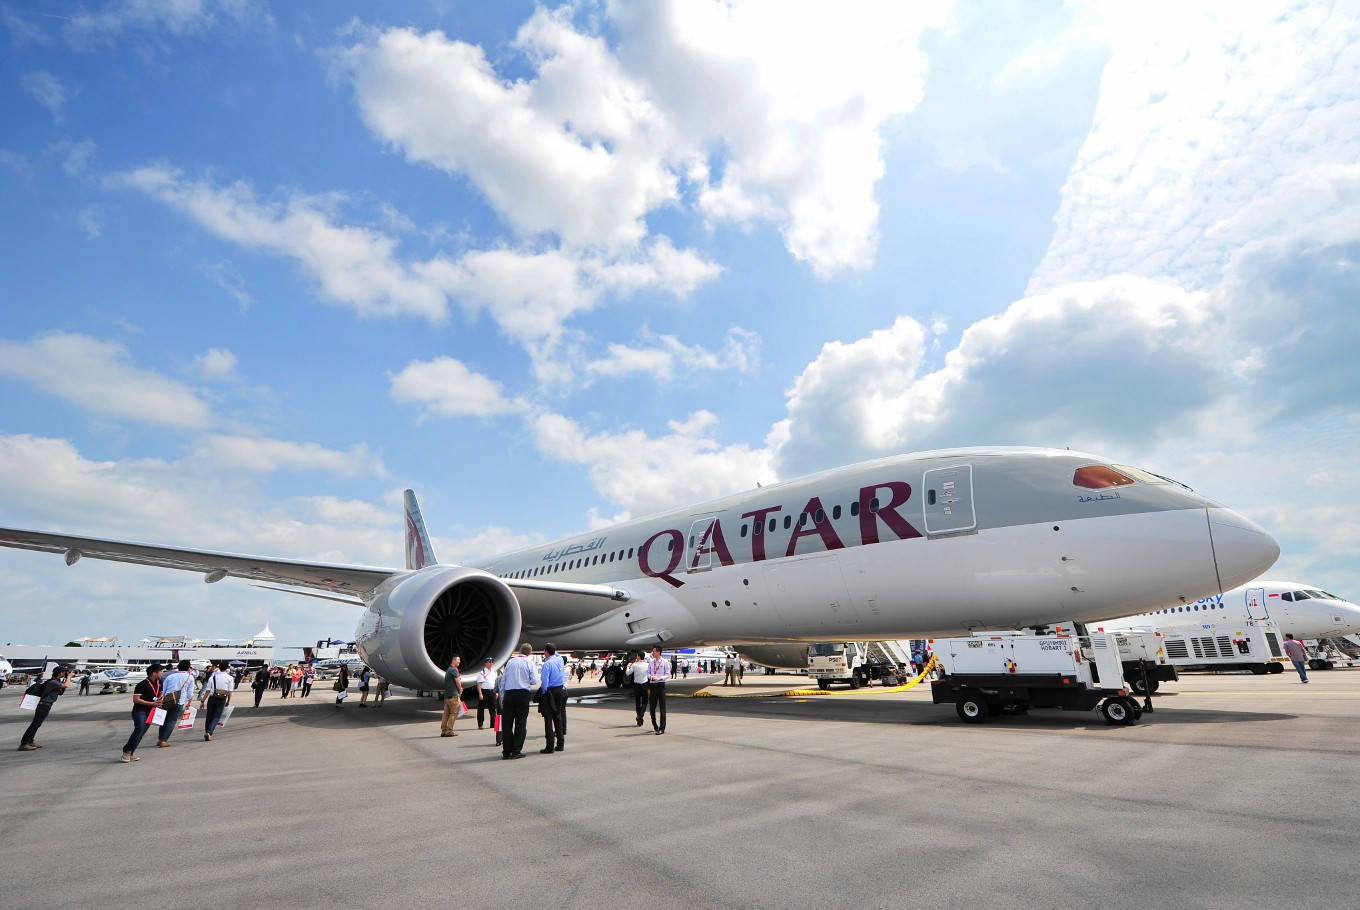 Qatar Airways resumes services to Bali, plans to increase flights to Jakarta